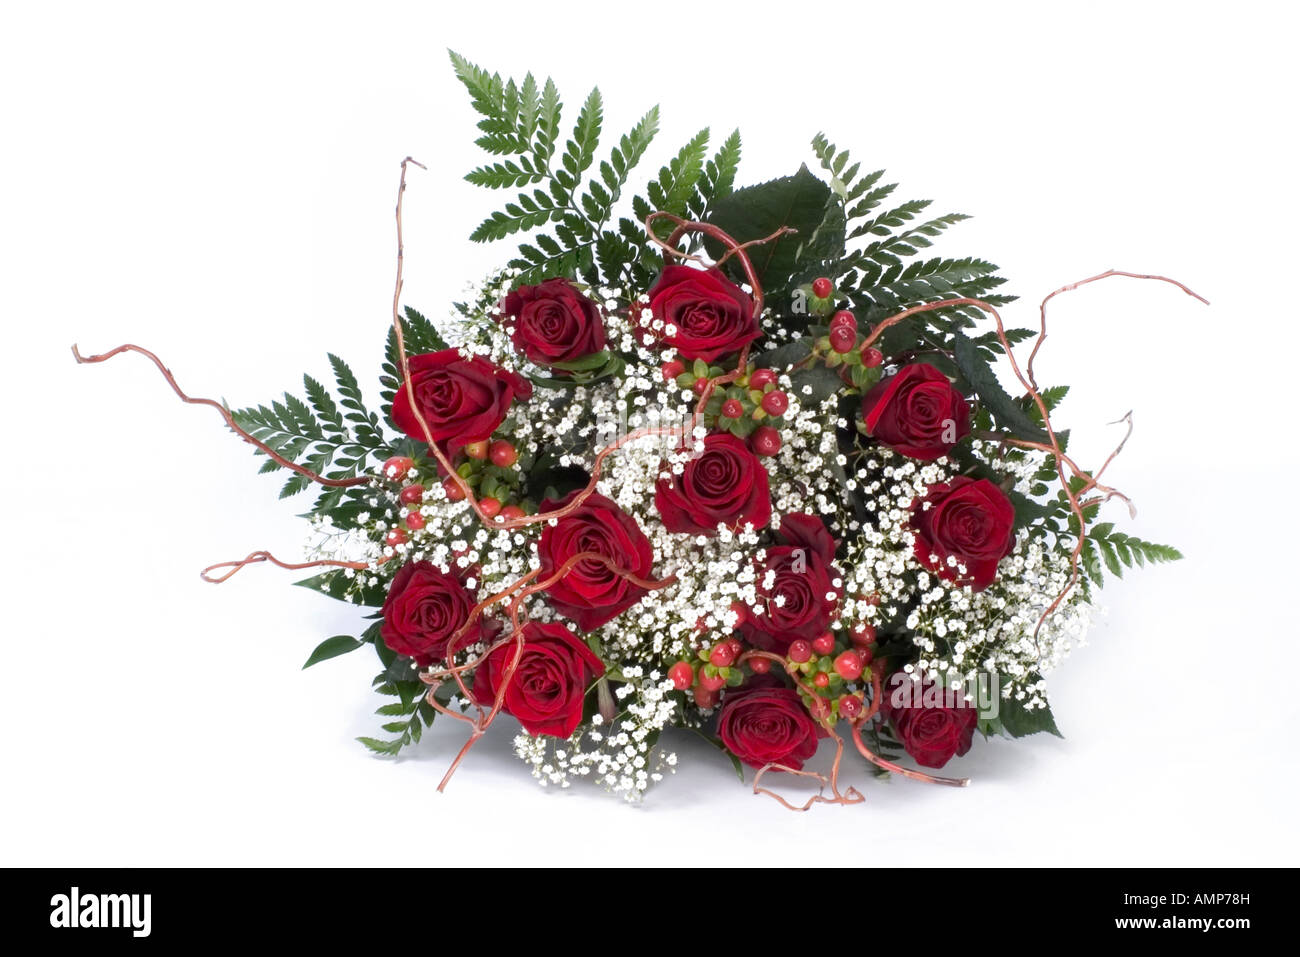 Small Display Of Red Roses White Angels Hair And Ferns Stock Photo